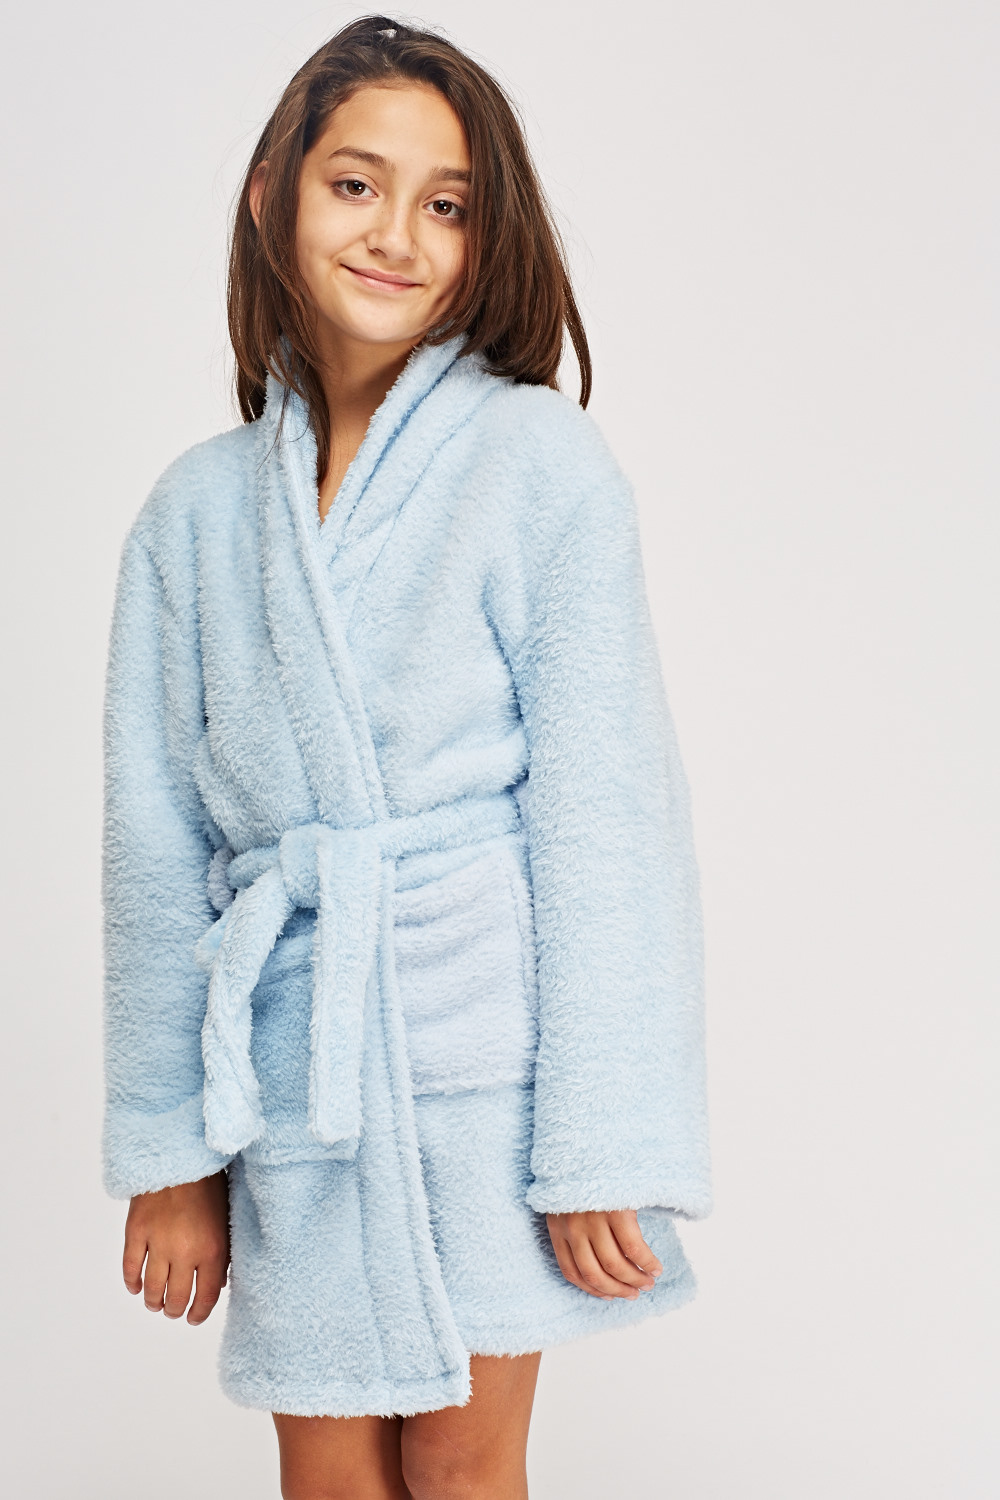 Logo Back Teddy Bear Dressing Gown - Just £5